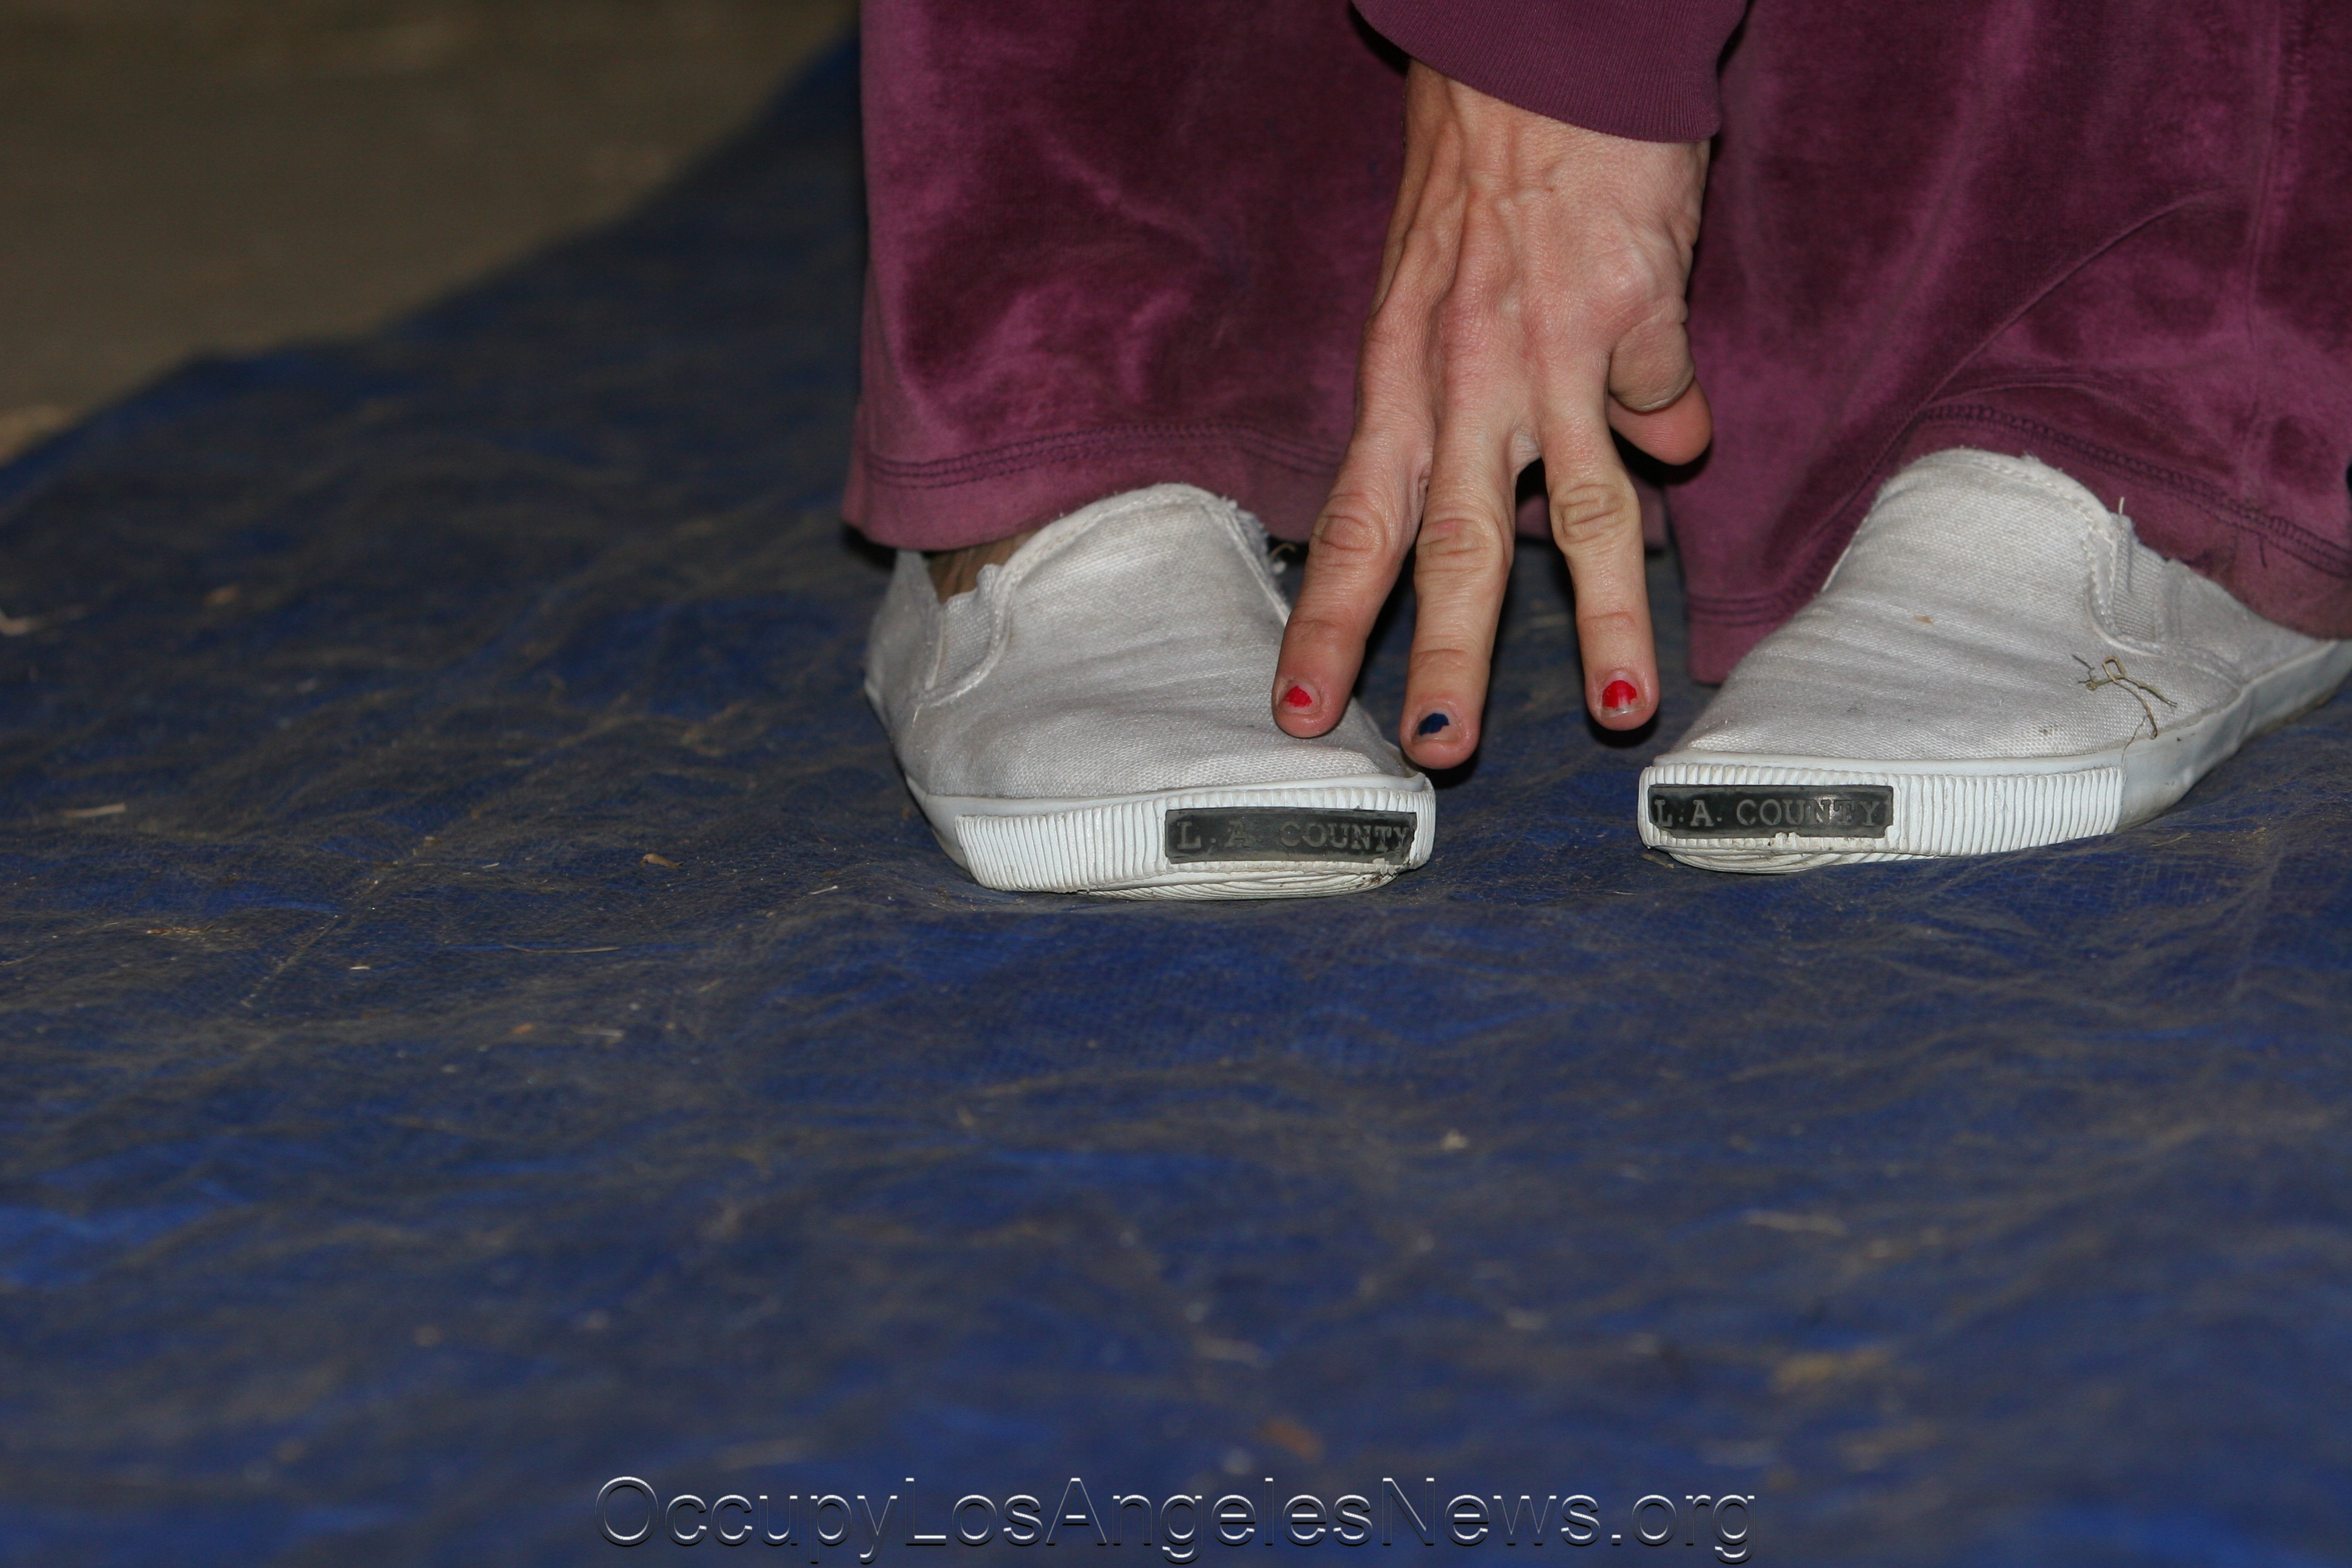 Melissa Balin showing the Los Angeles County Jail sneakers issued to her during one of her arrests while participating in Occupy Wall Street protests in Los Angeles.